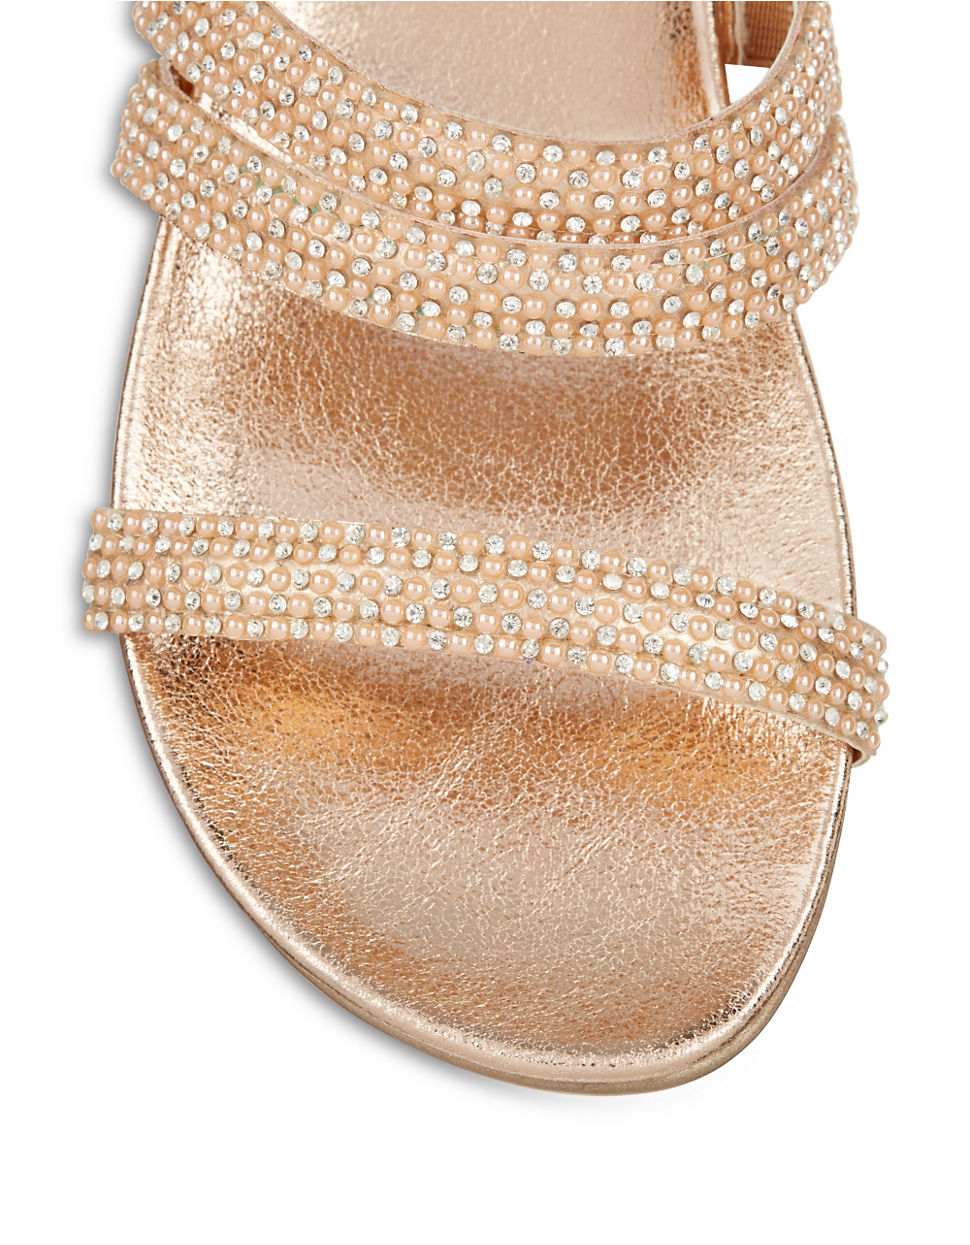 c03ddb0842ca Lyst - Kenneth Cole Reaction Slim Shotz Beaded Sandals in Pink